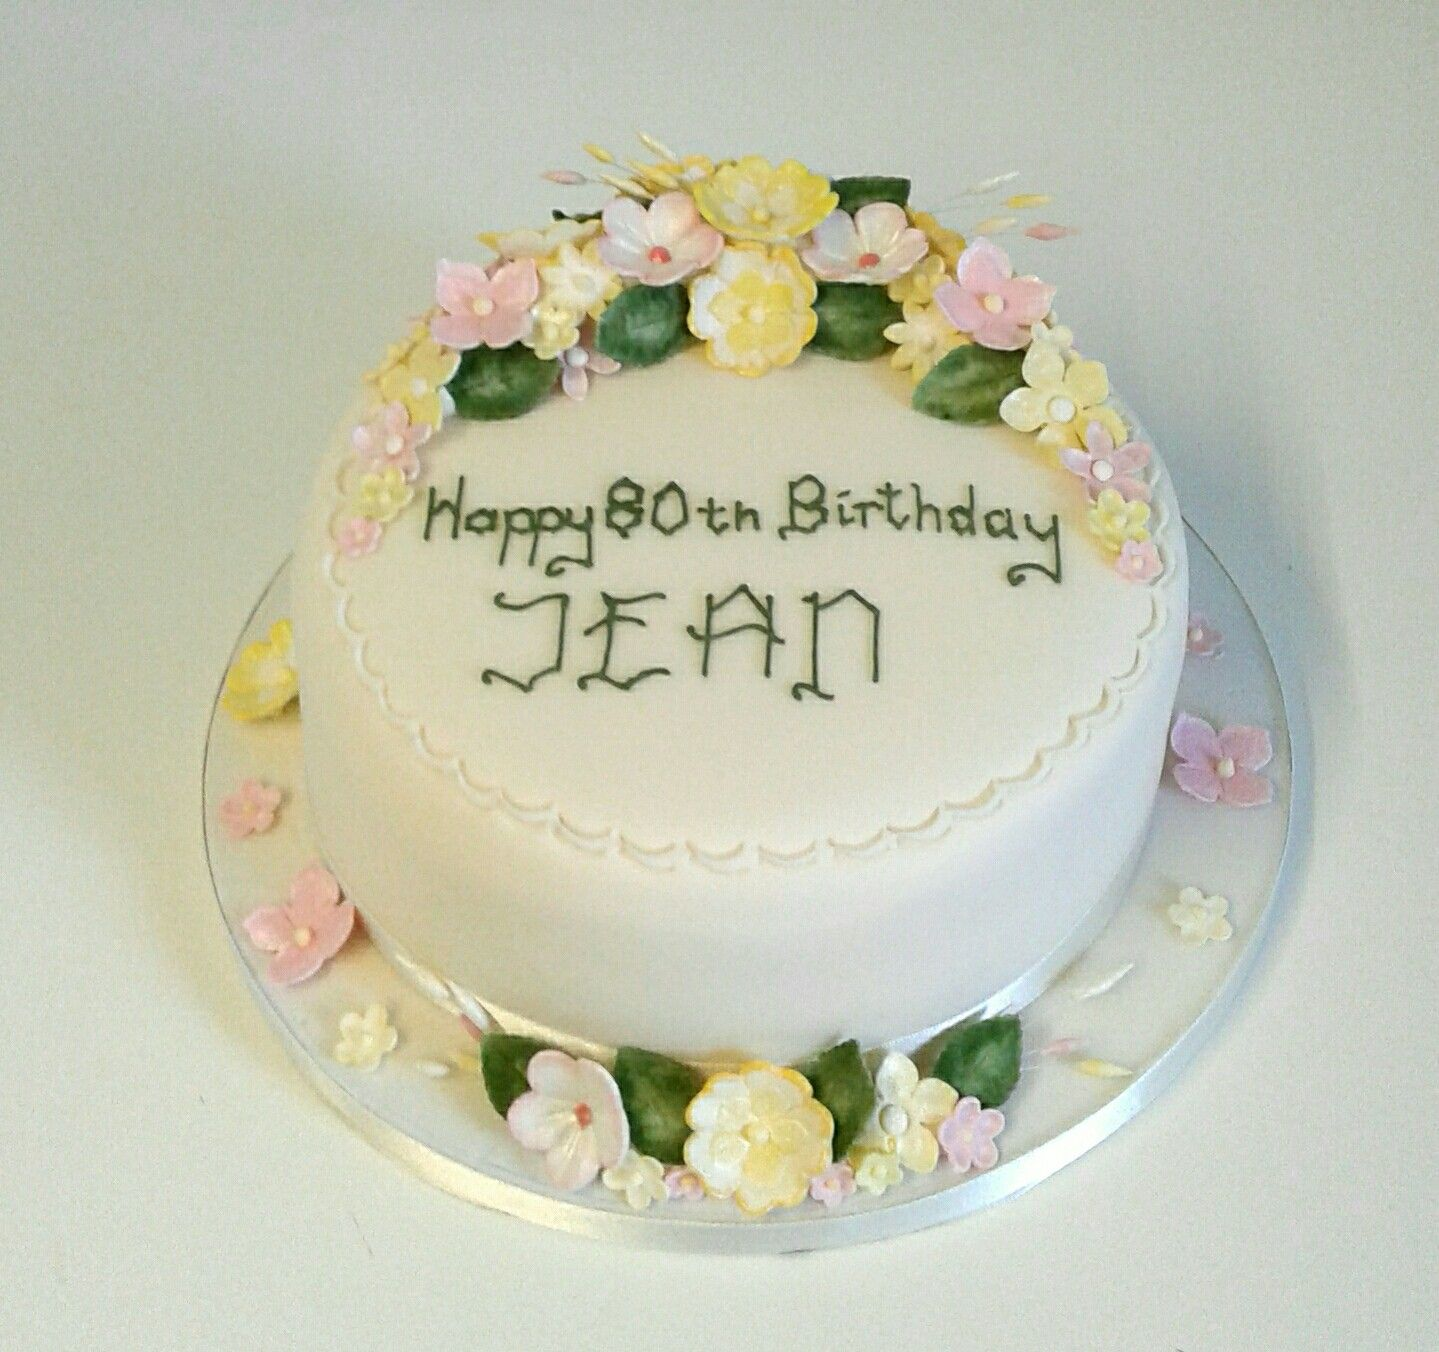 th birthday cake decorated with sugar blossoms and roses also rh pinterest